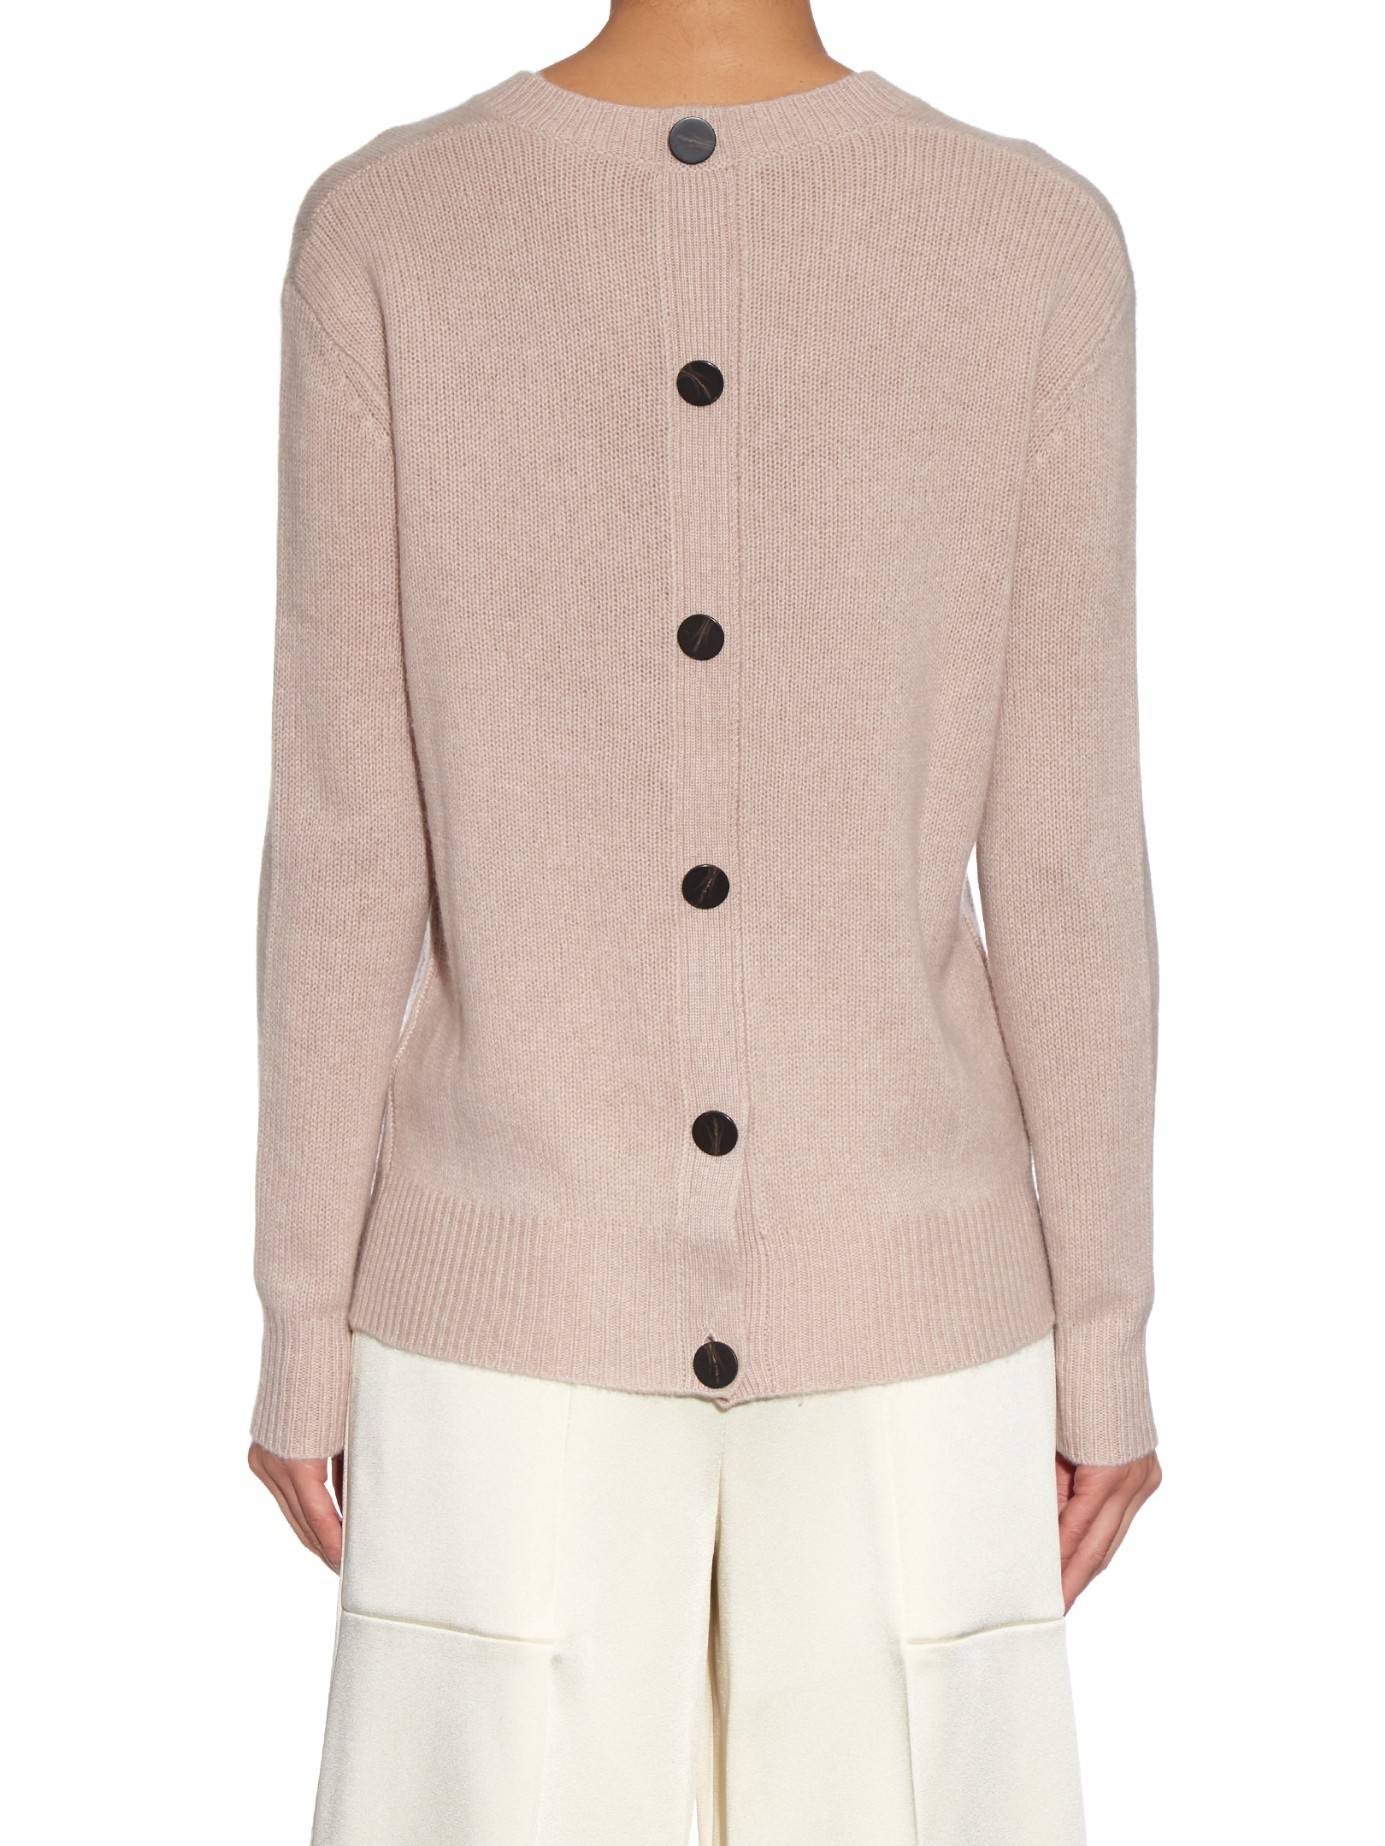 Joseph Crew-neck Cashmere Sweater in Natural | Lyst